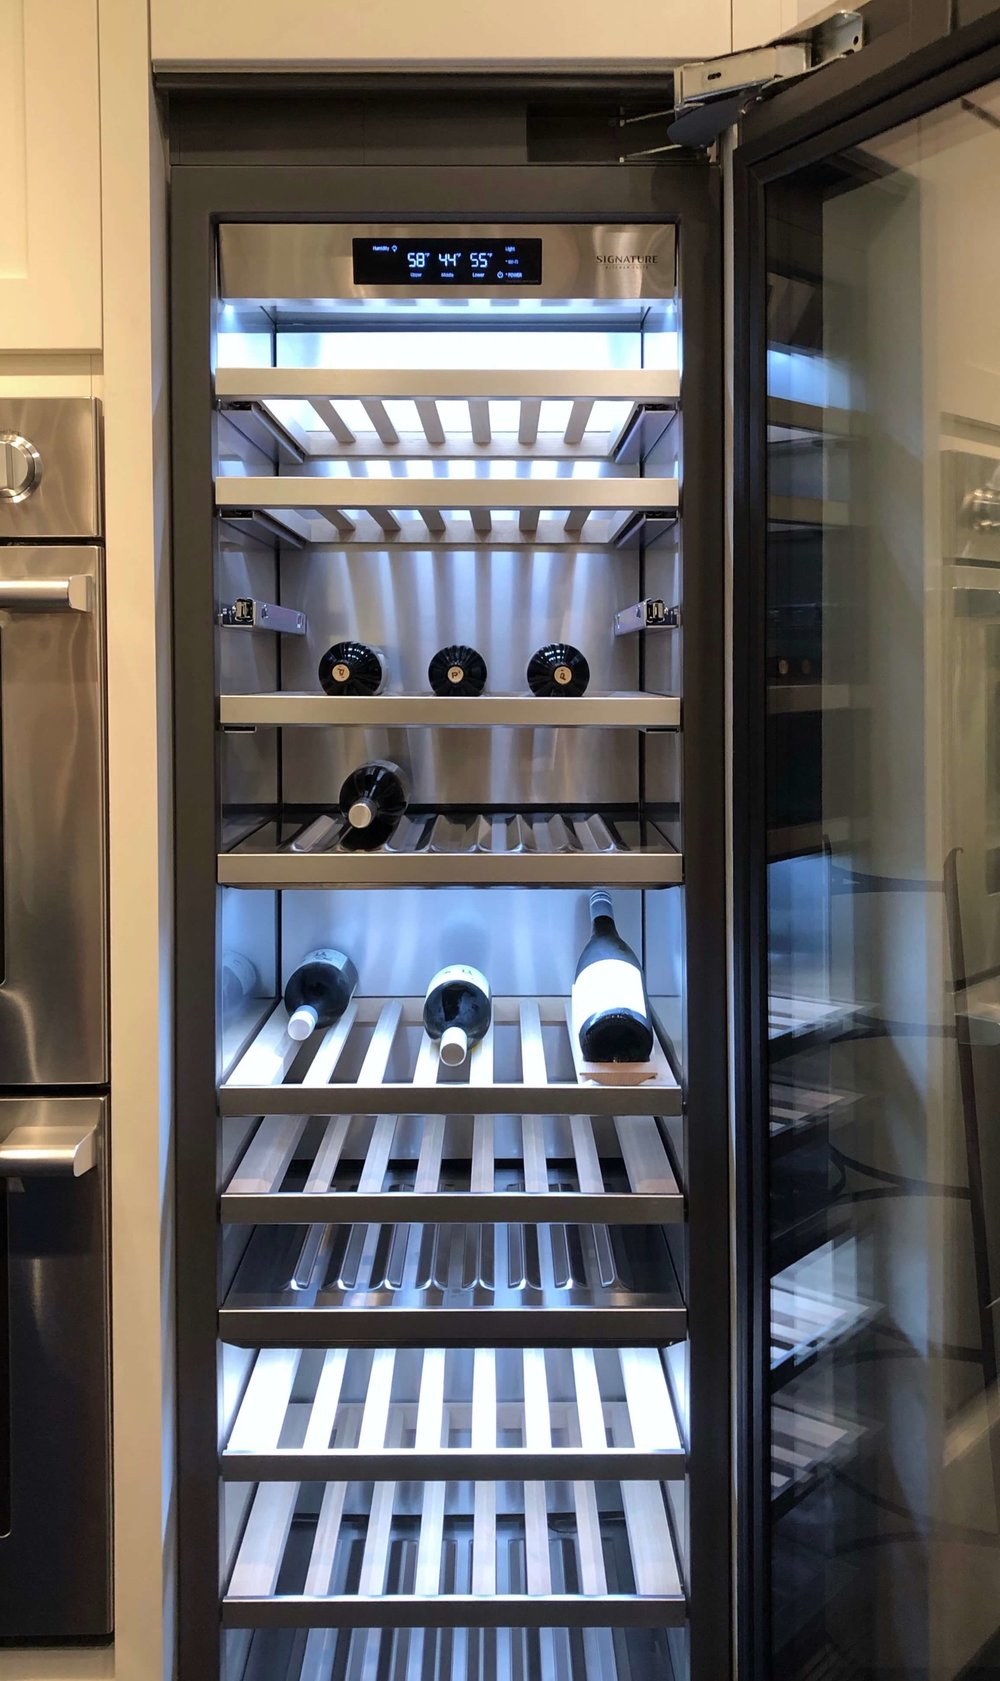 Interior of wine refrigeration unit | SKS Appliances Experience and Design Center, Napa